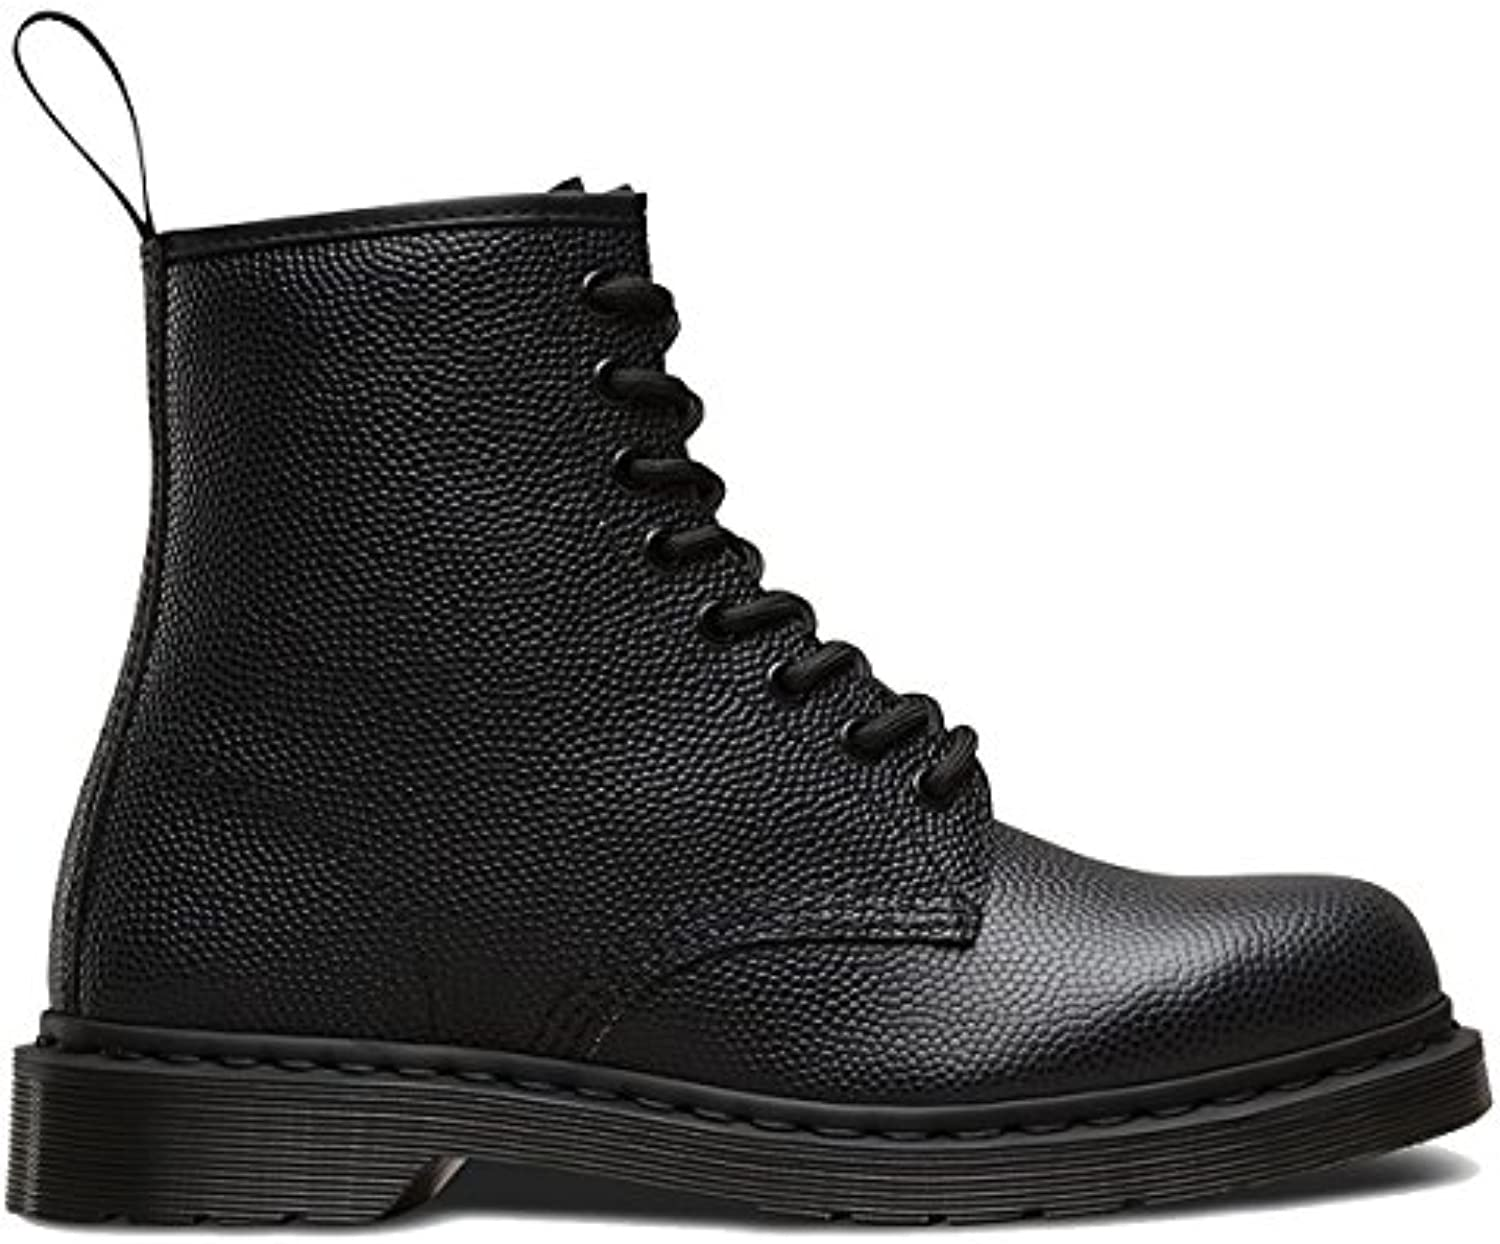 Dr.Martens donna 1460 8 Eyelet Pebble Leather stivali | Outlet